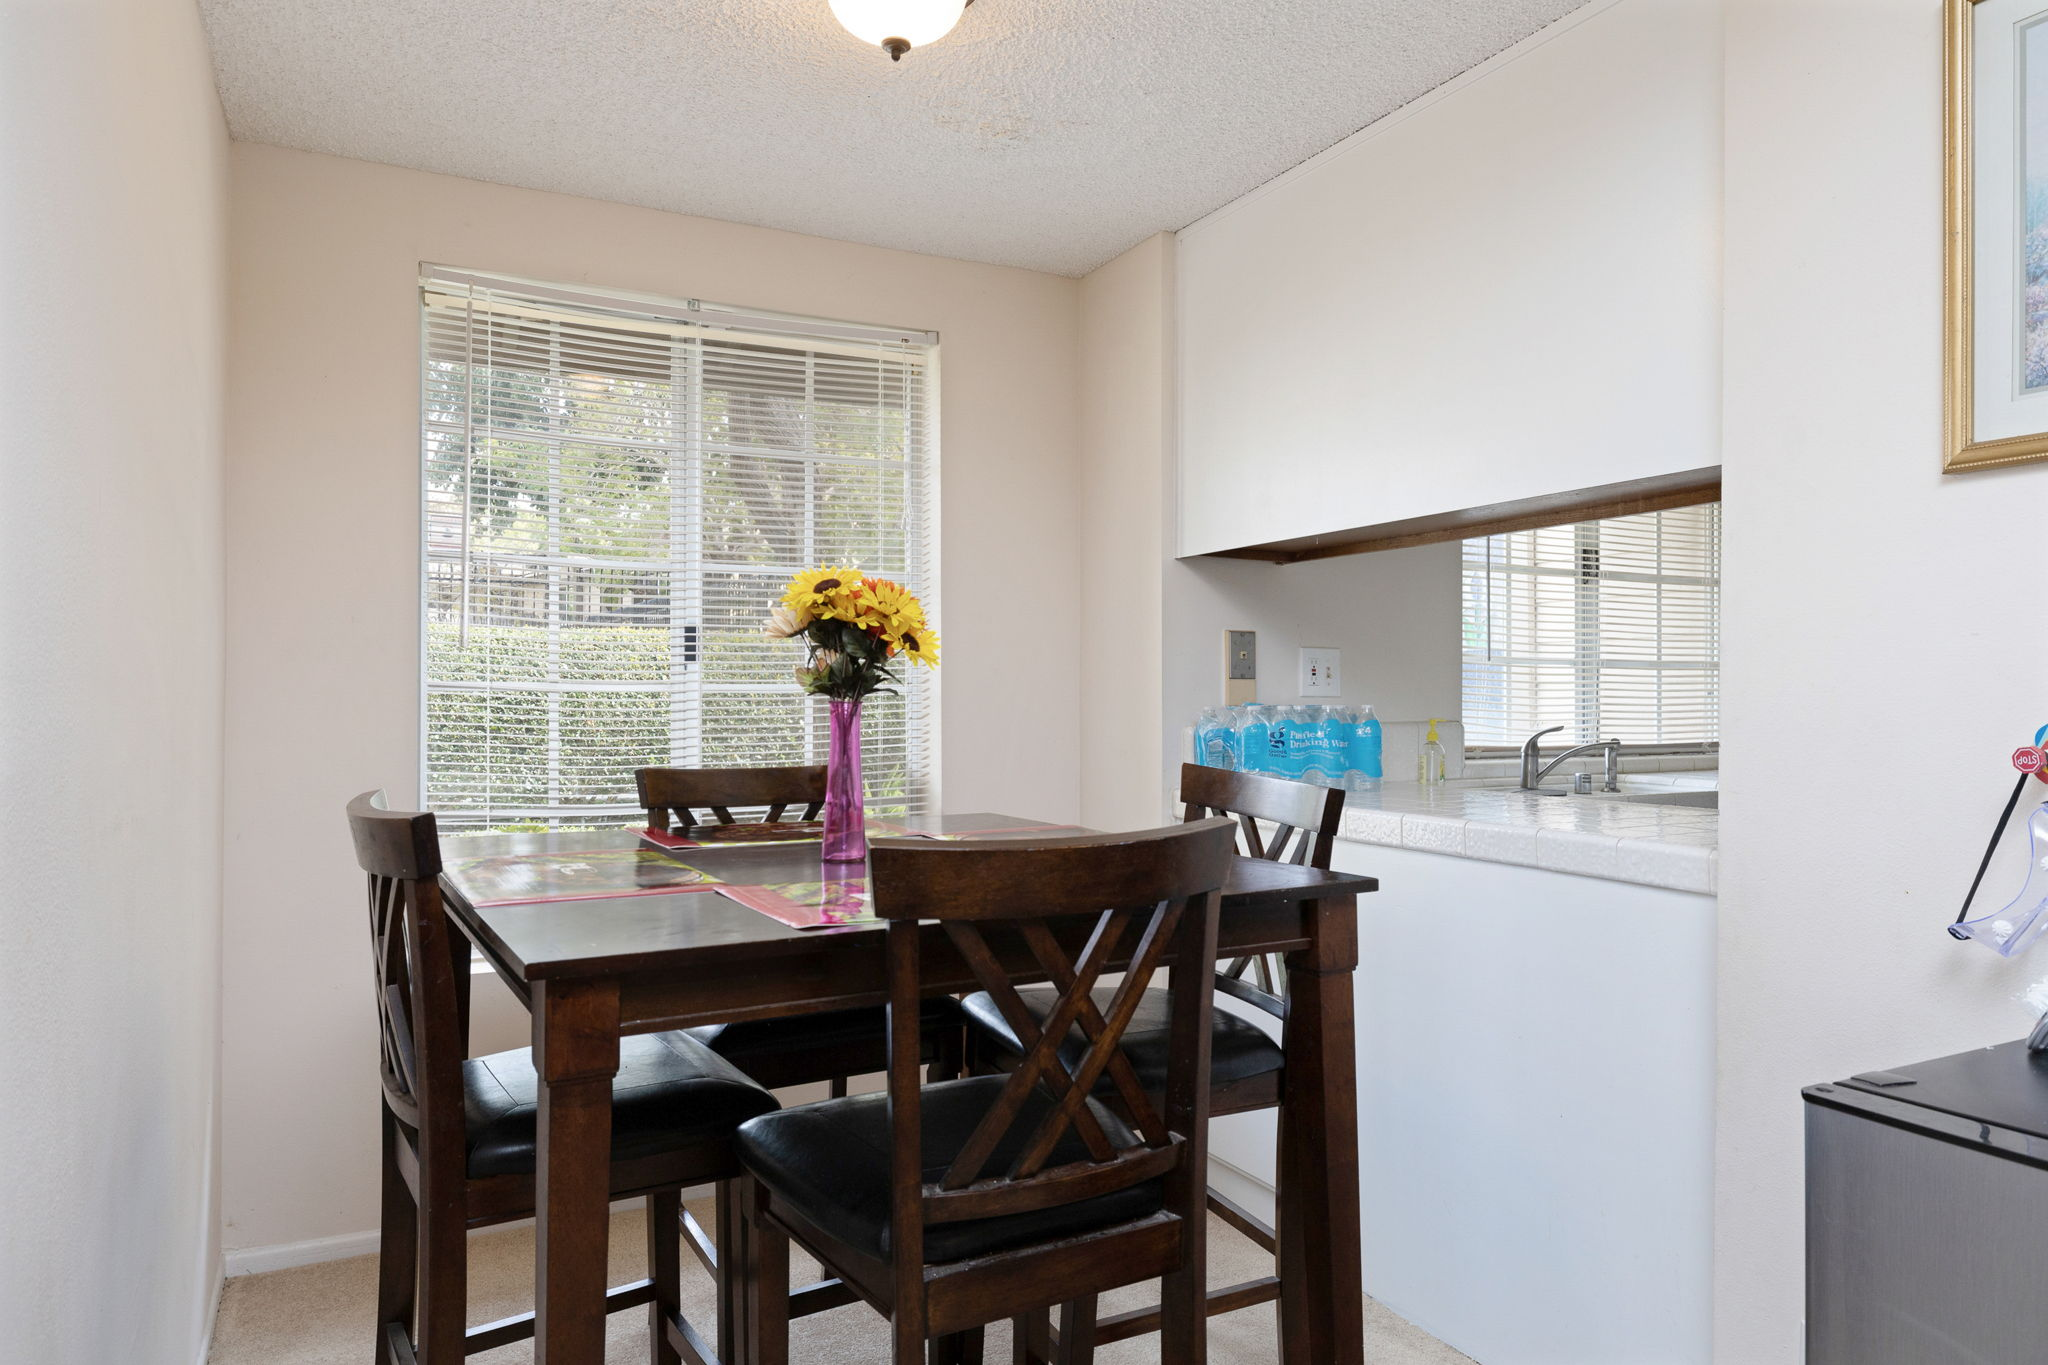 Easy access dining area